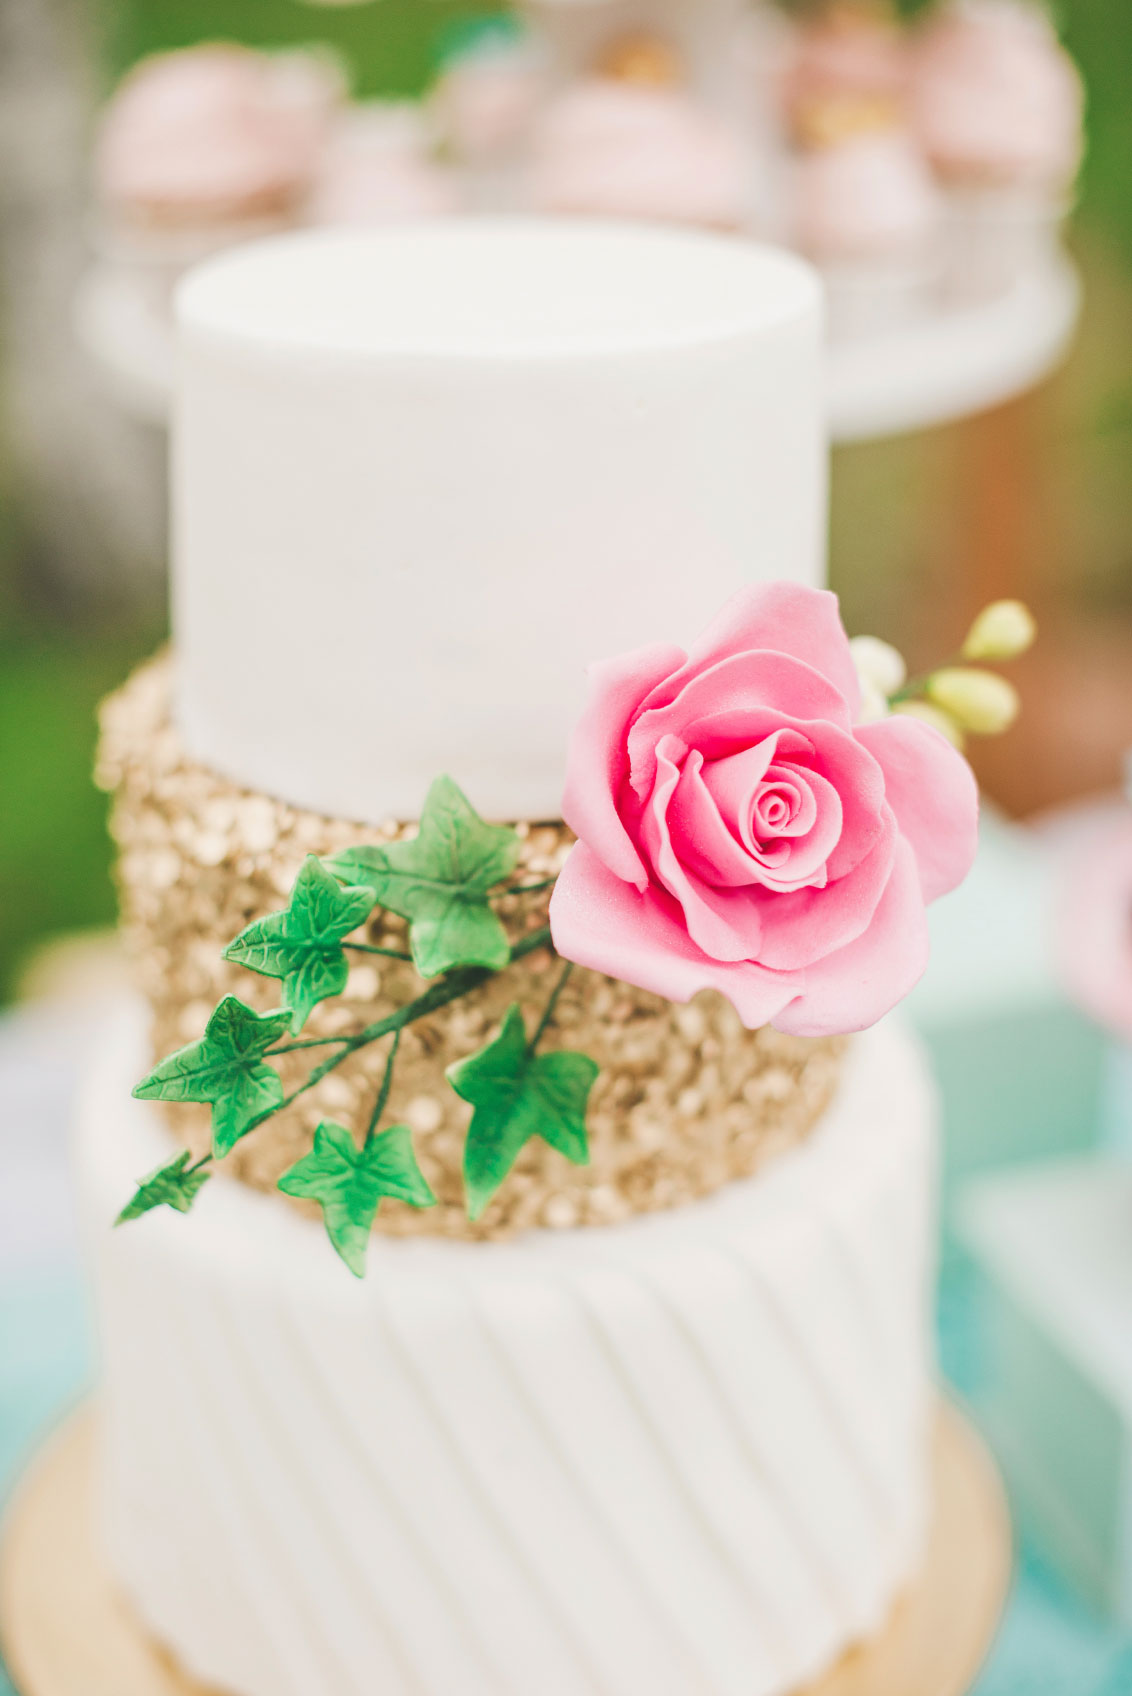 Prettiest-wedding-cake-on-dessert-table-000043015052_Medium